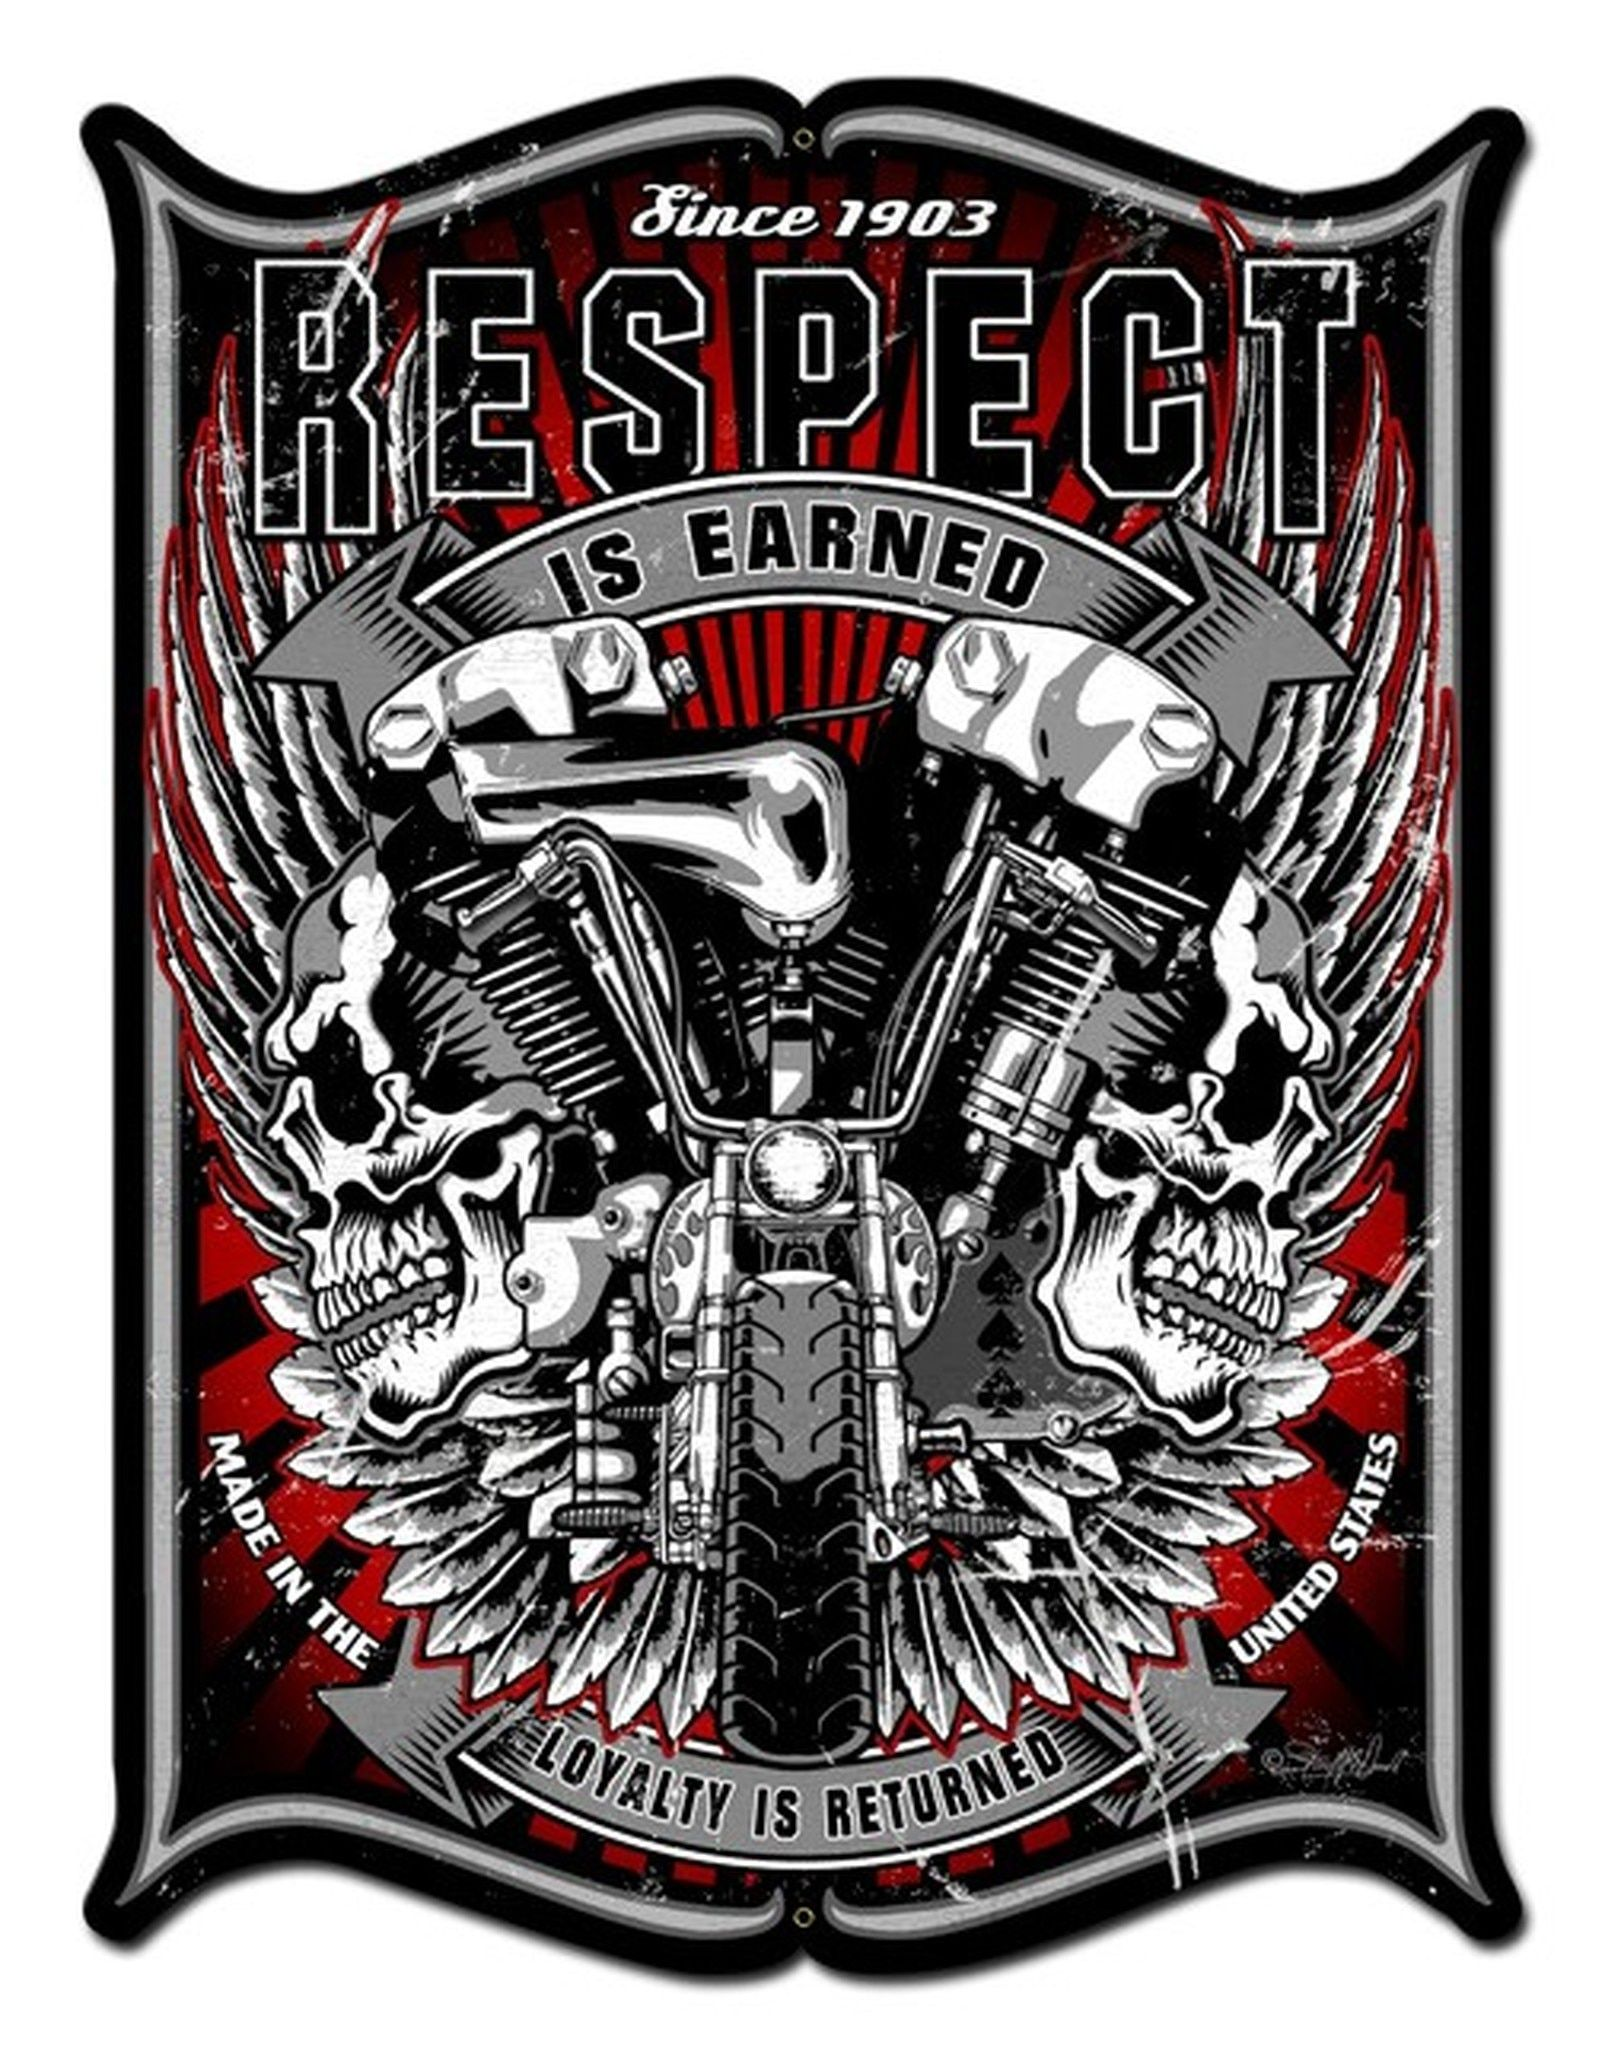 Respect Metal Sign 24 x 33 Inches Harley davidson